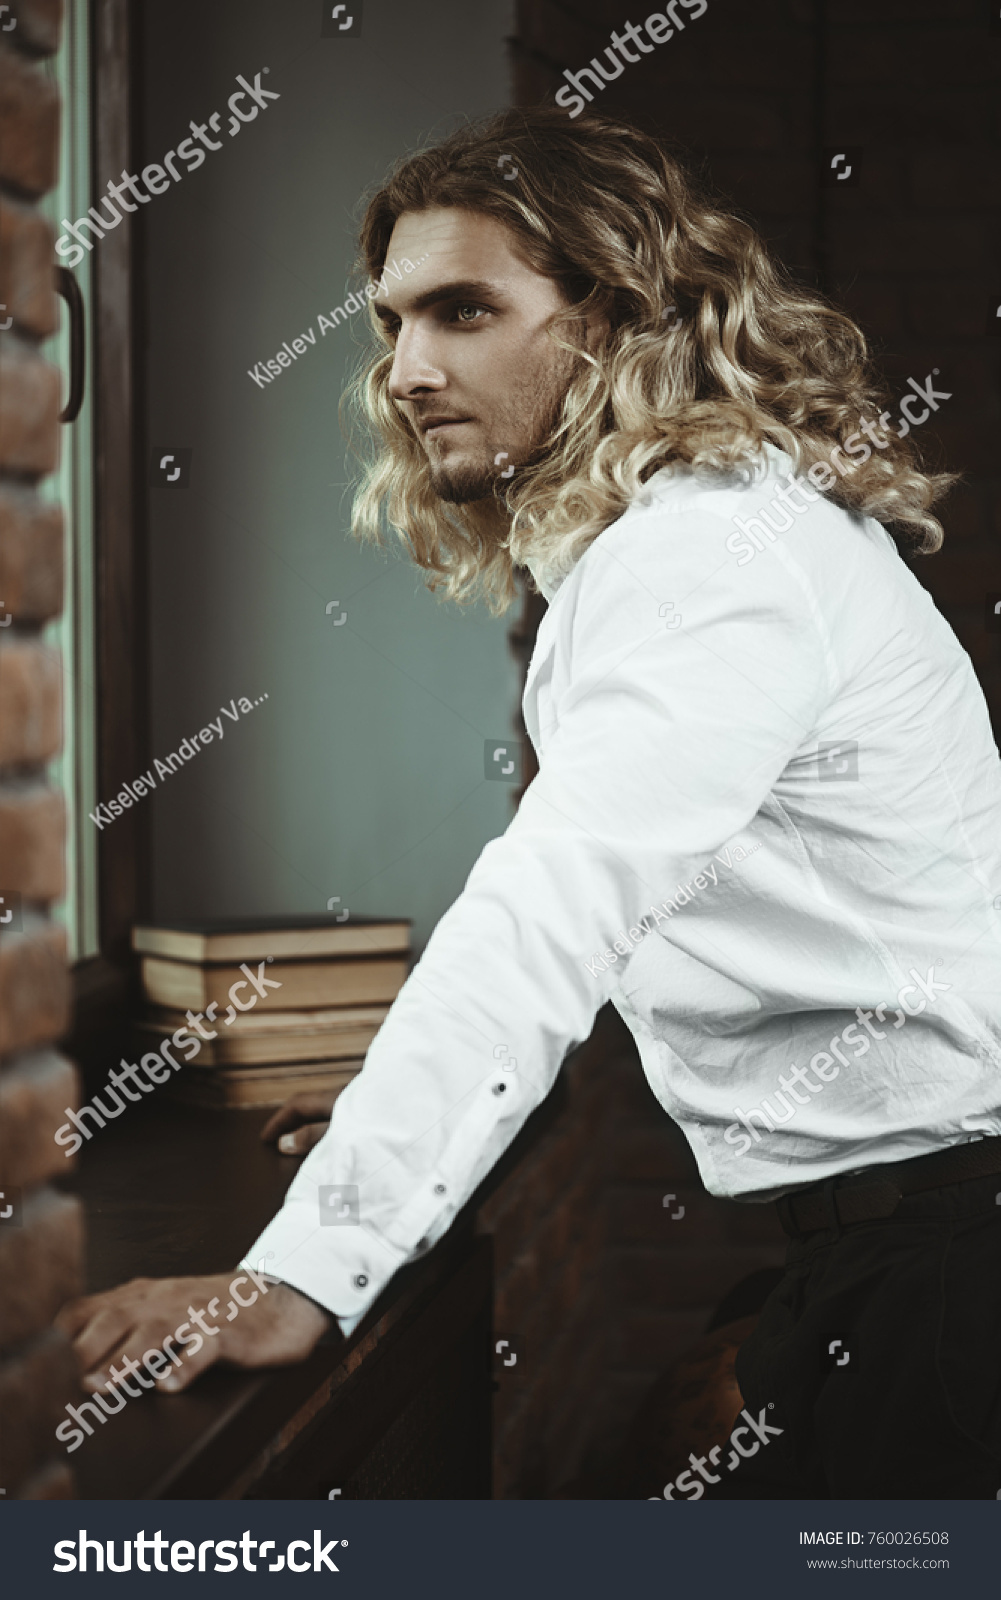 Handsome Man White Shirt Long Curly Stock Photo (Royalty Free ...